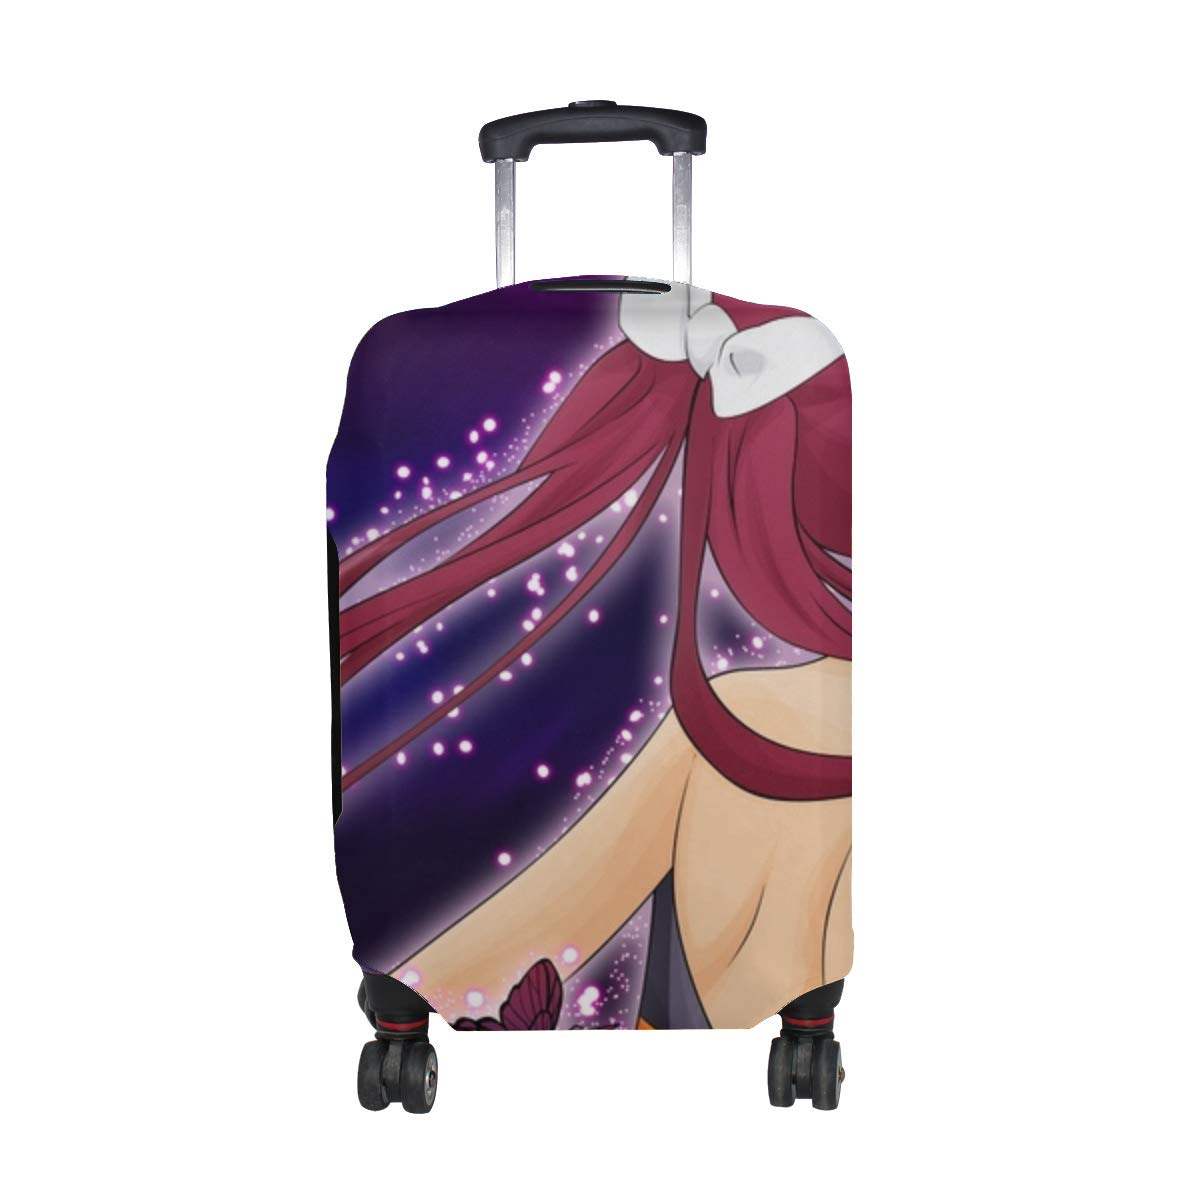 Maxm Umi Monogatari Girl Brunette Radiance Butterfly Pattern Print Travel Luggage Protector Baggage Suitcase Cover Fits 18-21 Inch Luggage